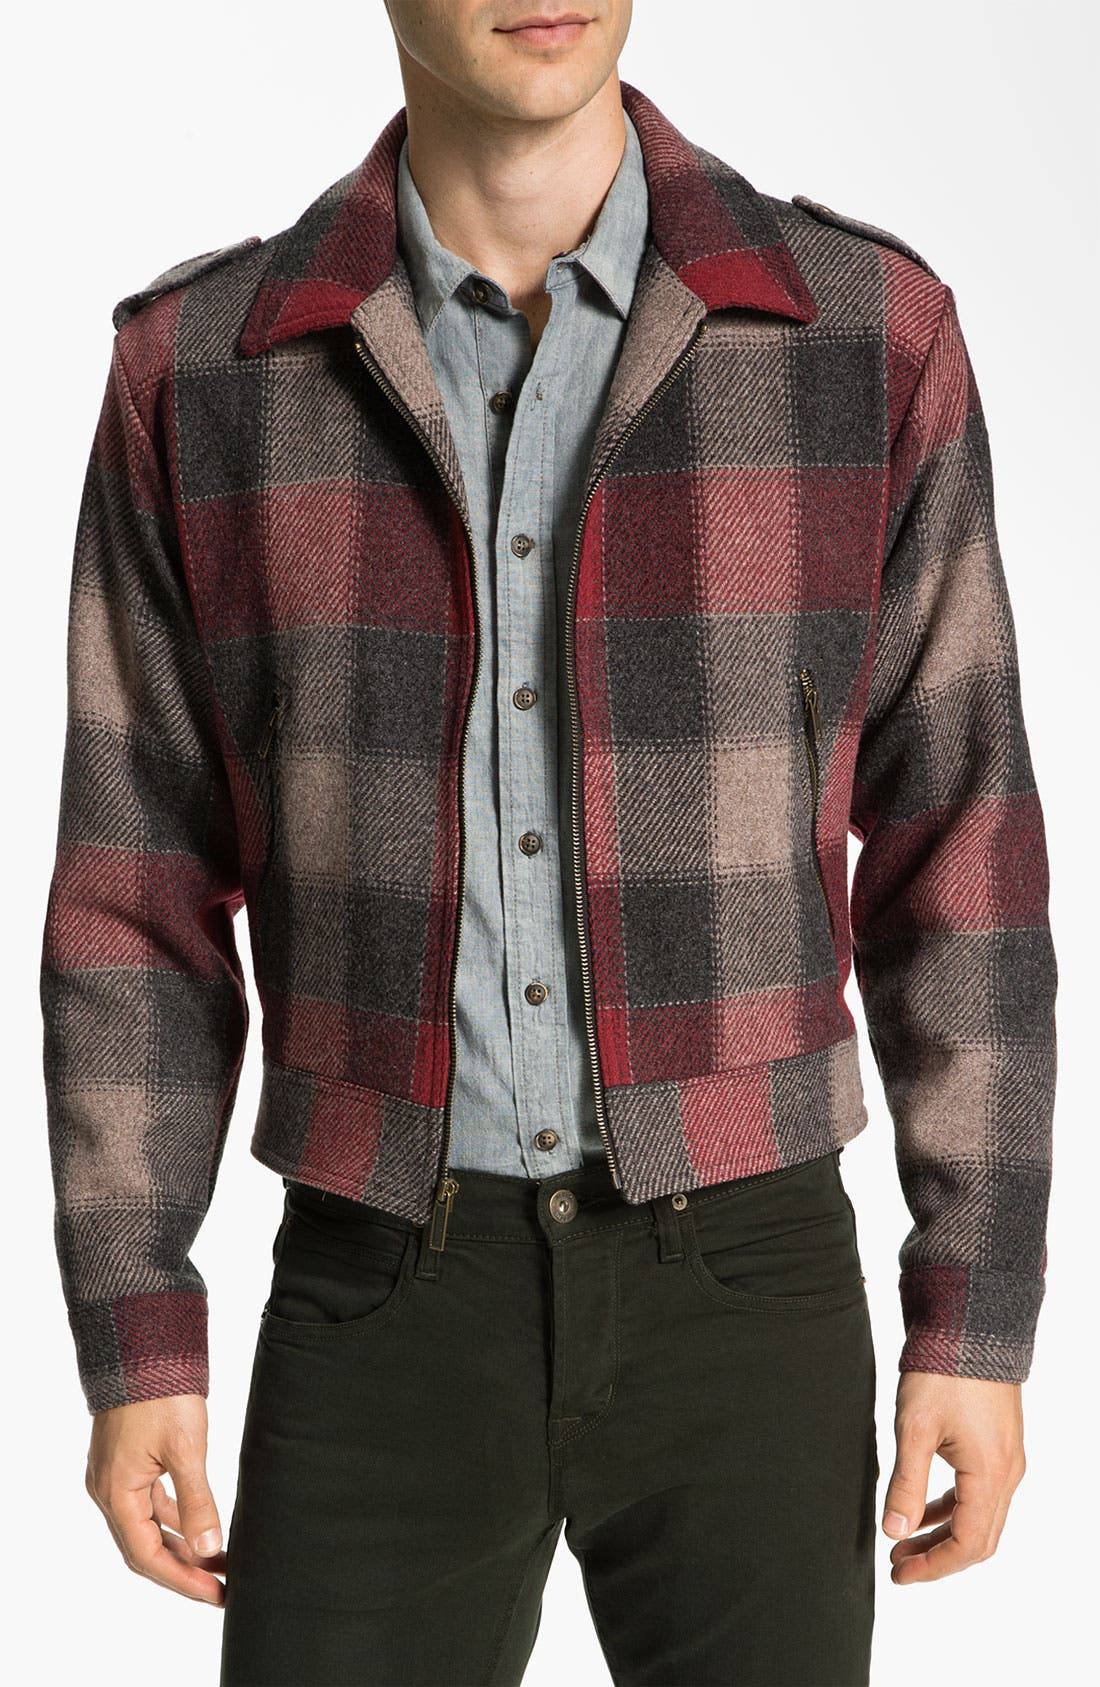 Alternate Image 1 Selected - Pendleton 'Liberty' Fitted Jacket